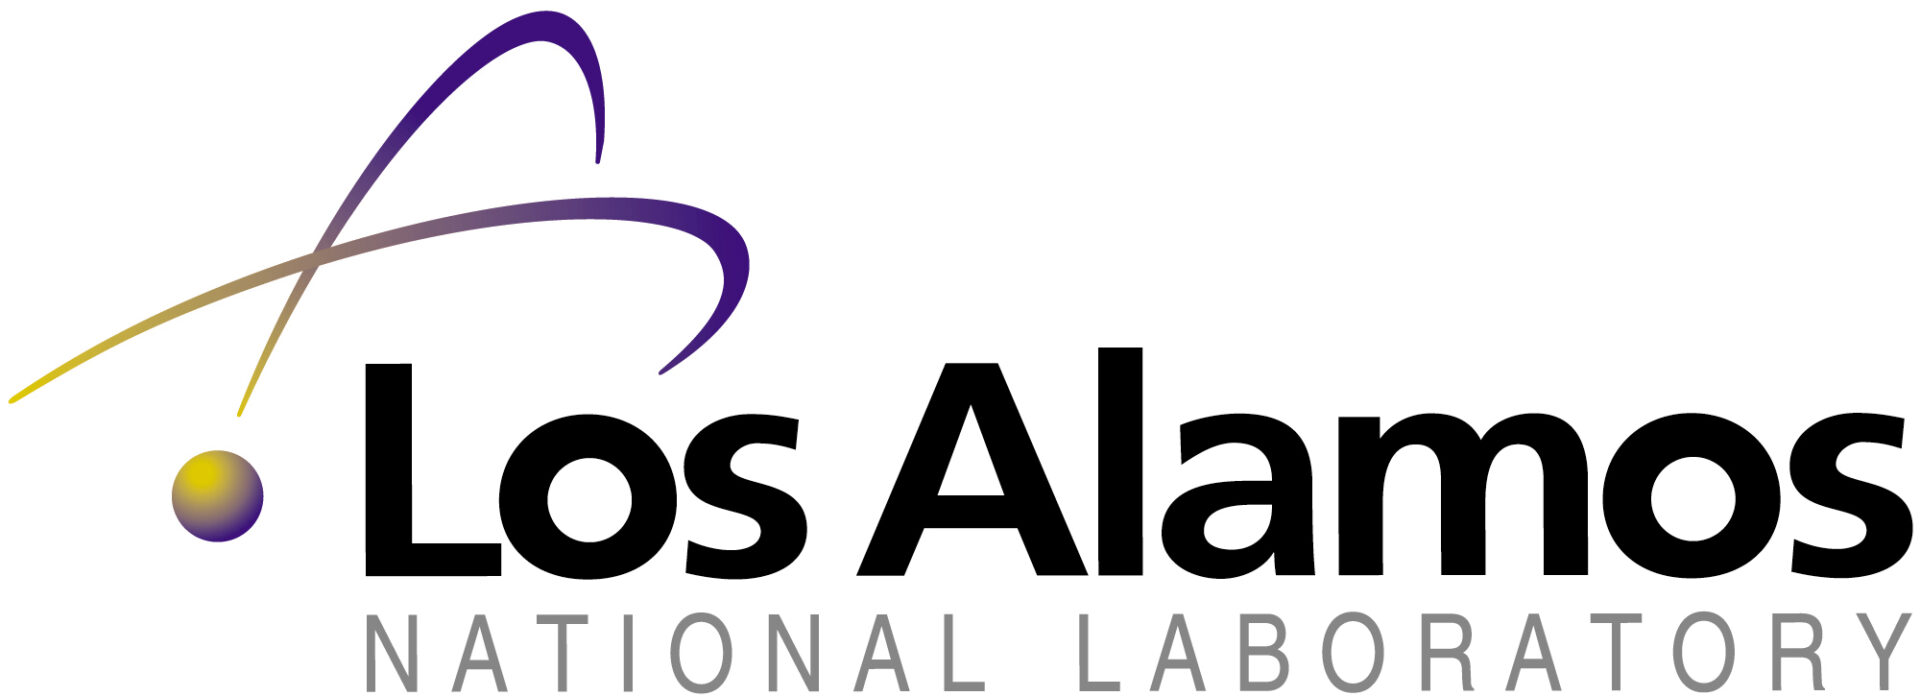 https://militarymojo.org/wp-content/uploads/2020/11/los-alamos-national-lab-scaled.jpg